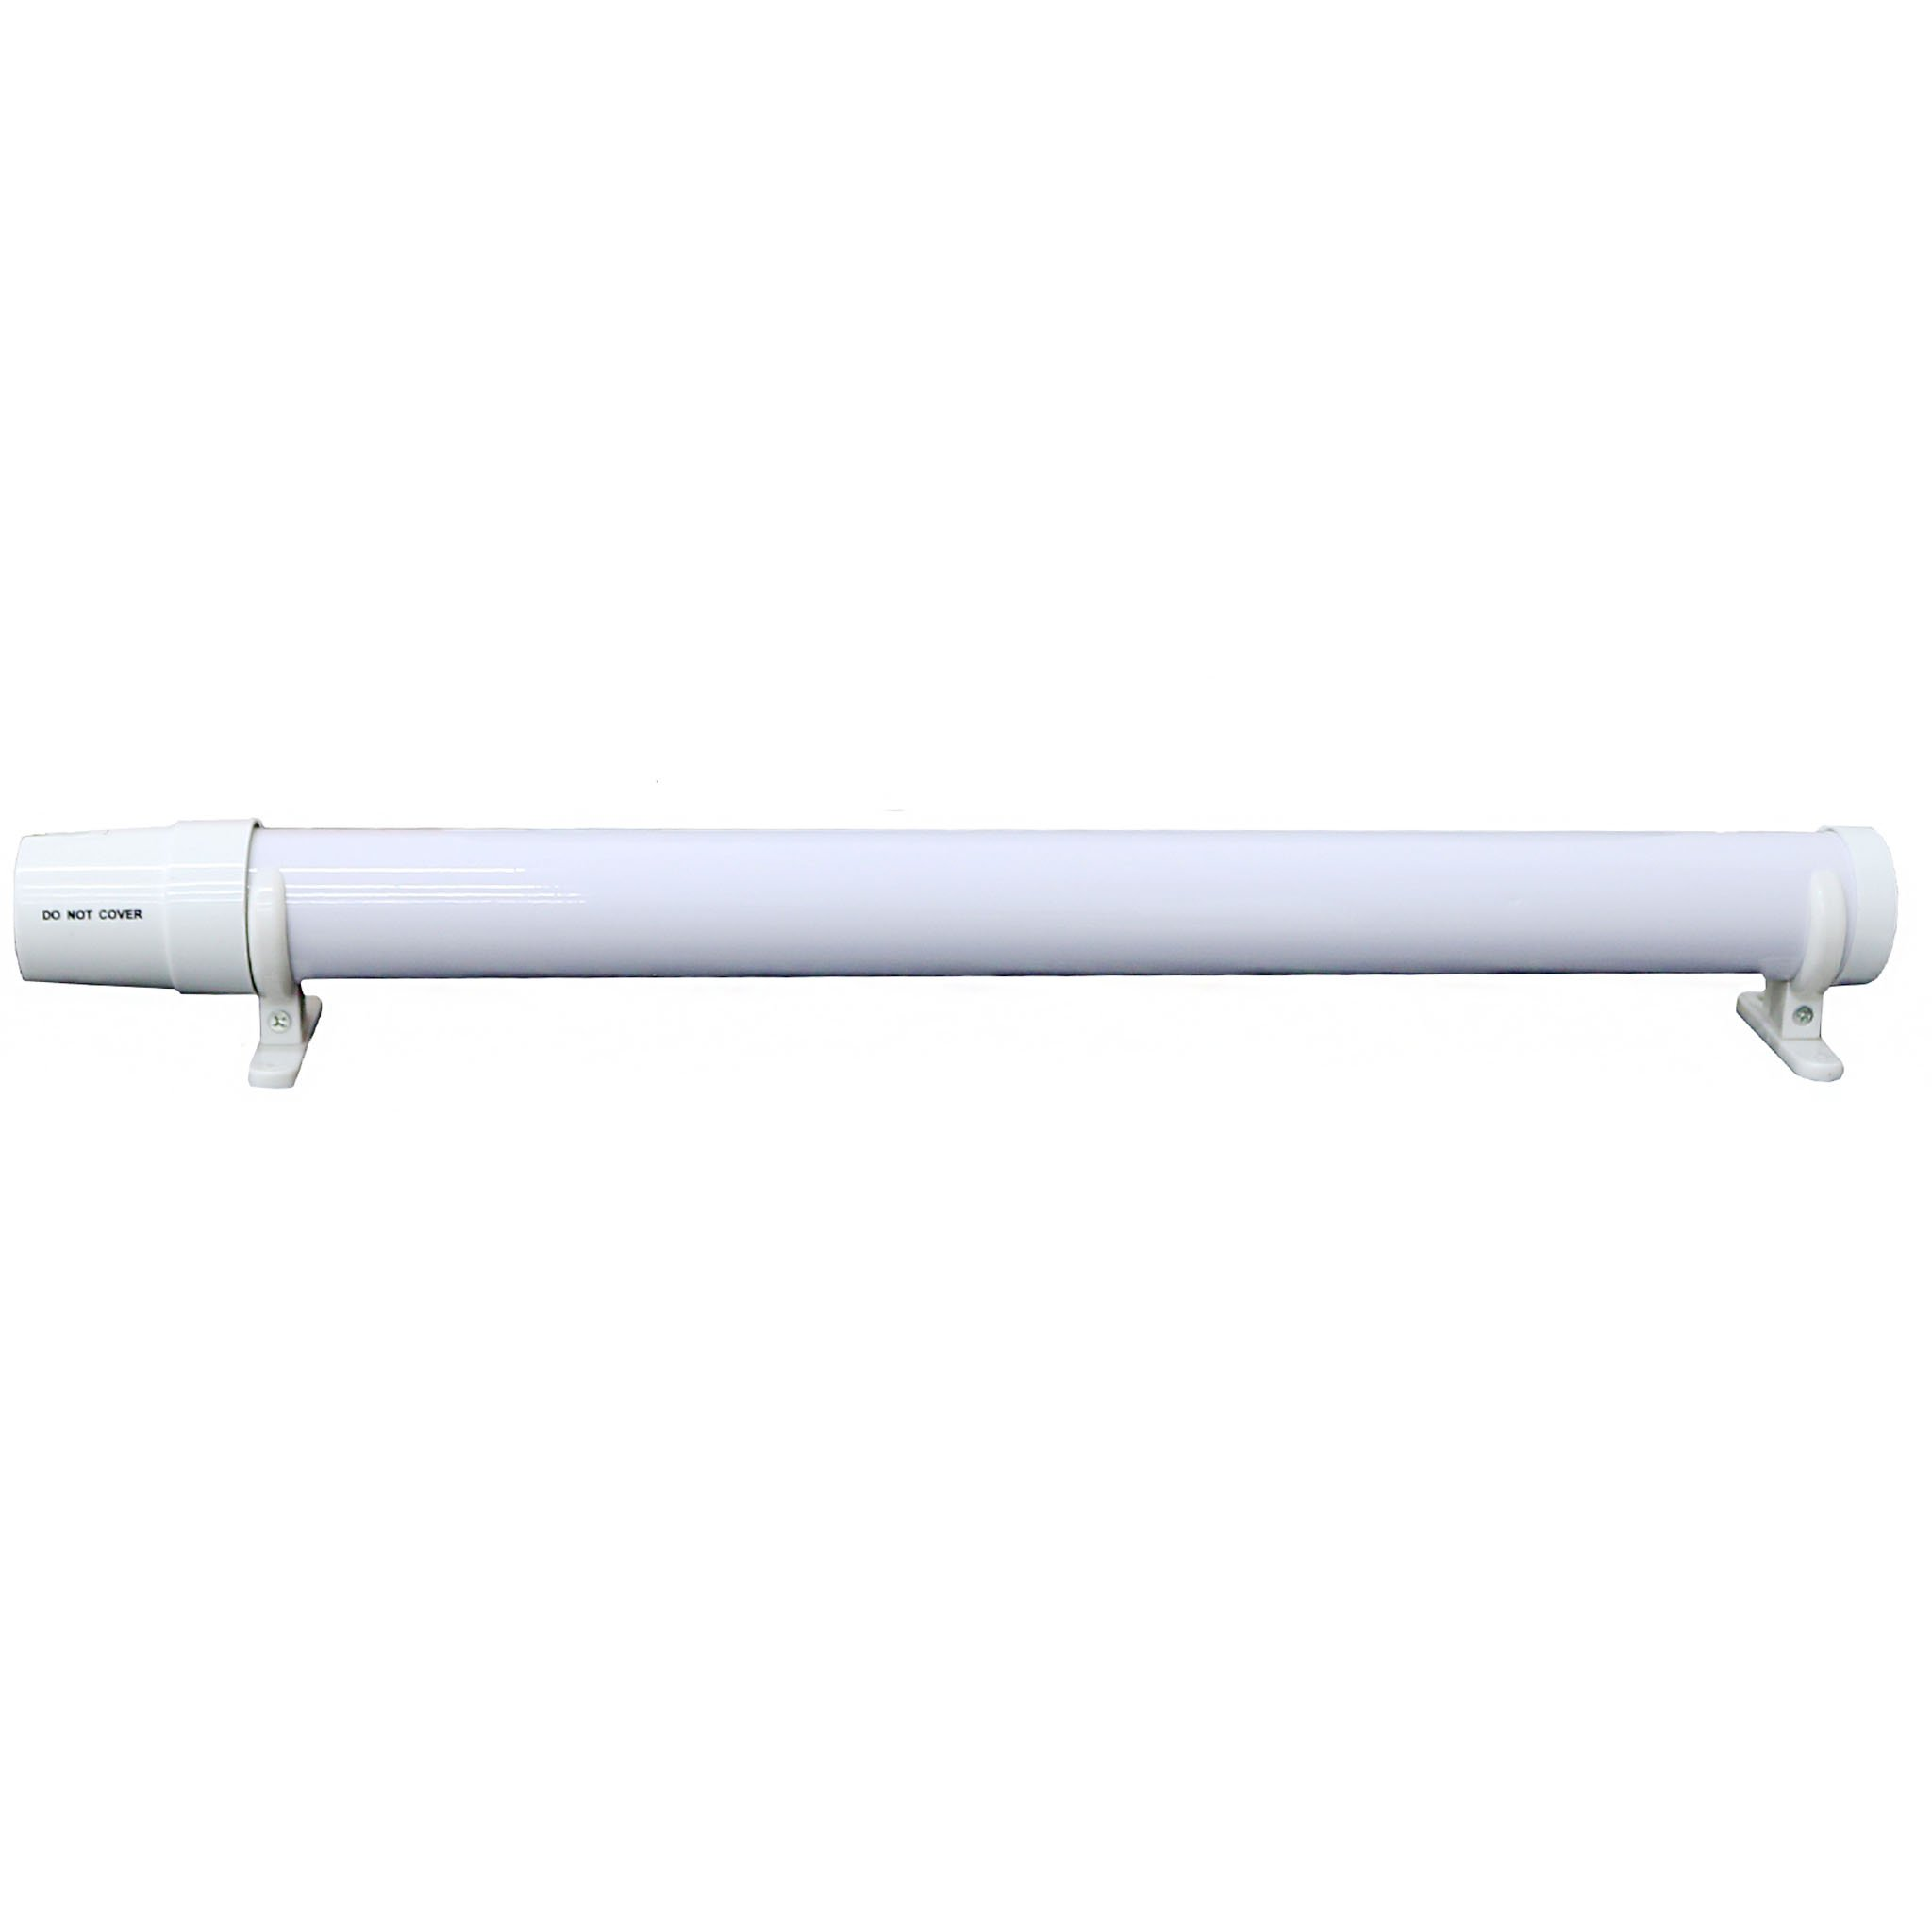 2ft 80W Wall Mounted Tubular Electric Tube Heater Greenhouse